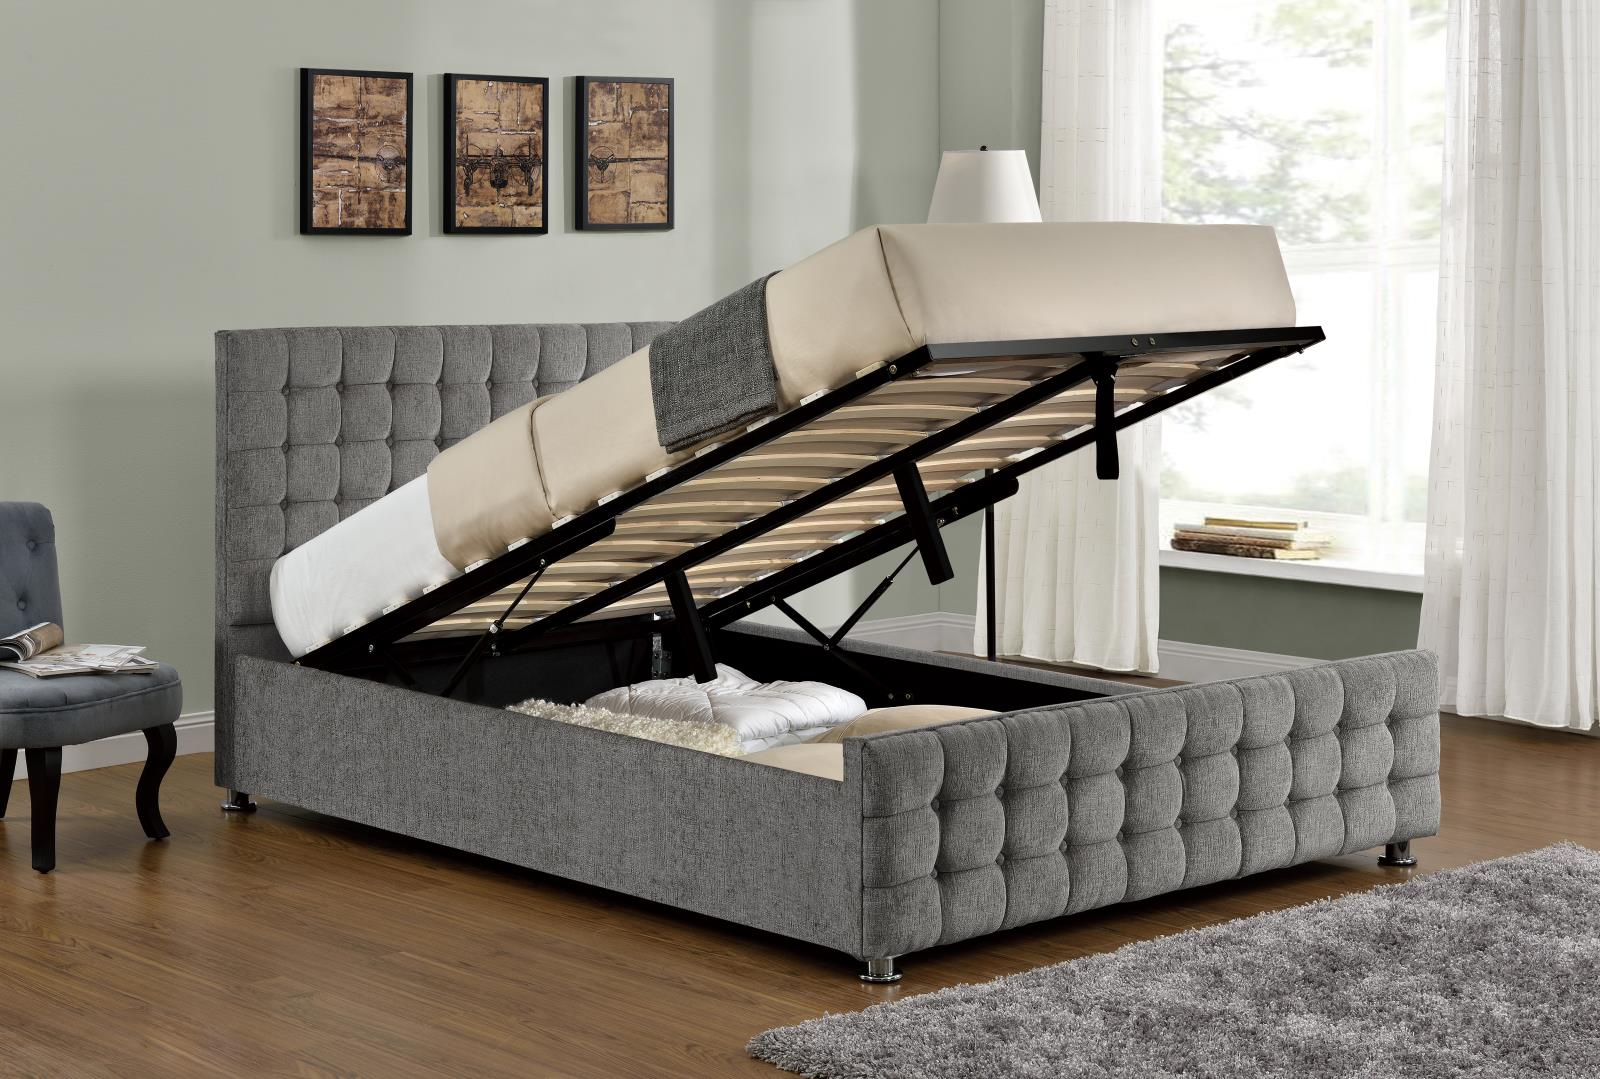 Boston silver chenille ottoman bed frame sensation sleep beds and mattresses - Beautiful snooze bedroom suites packing comfort in style ...